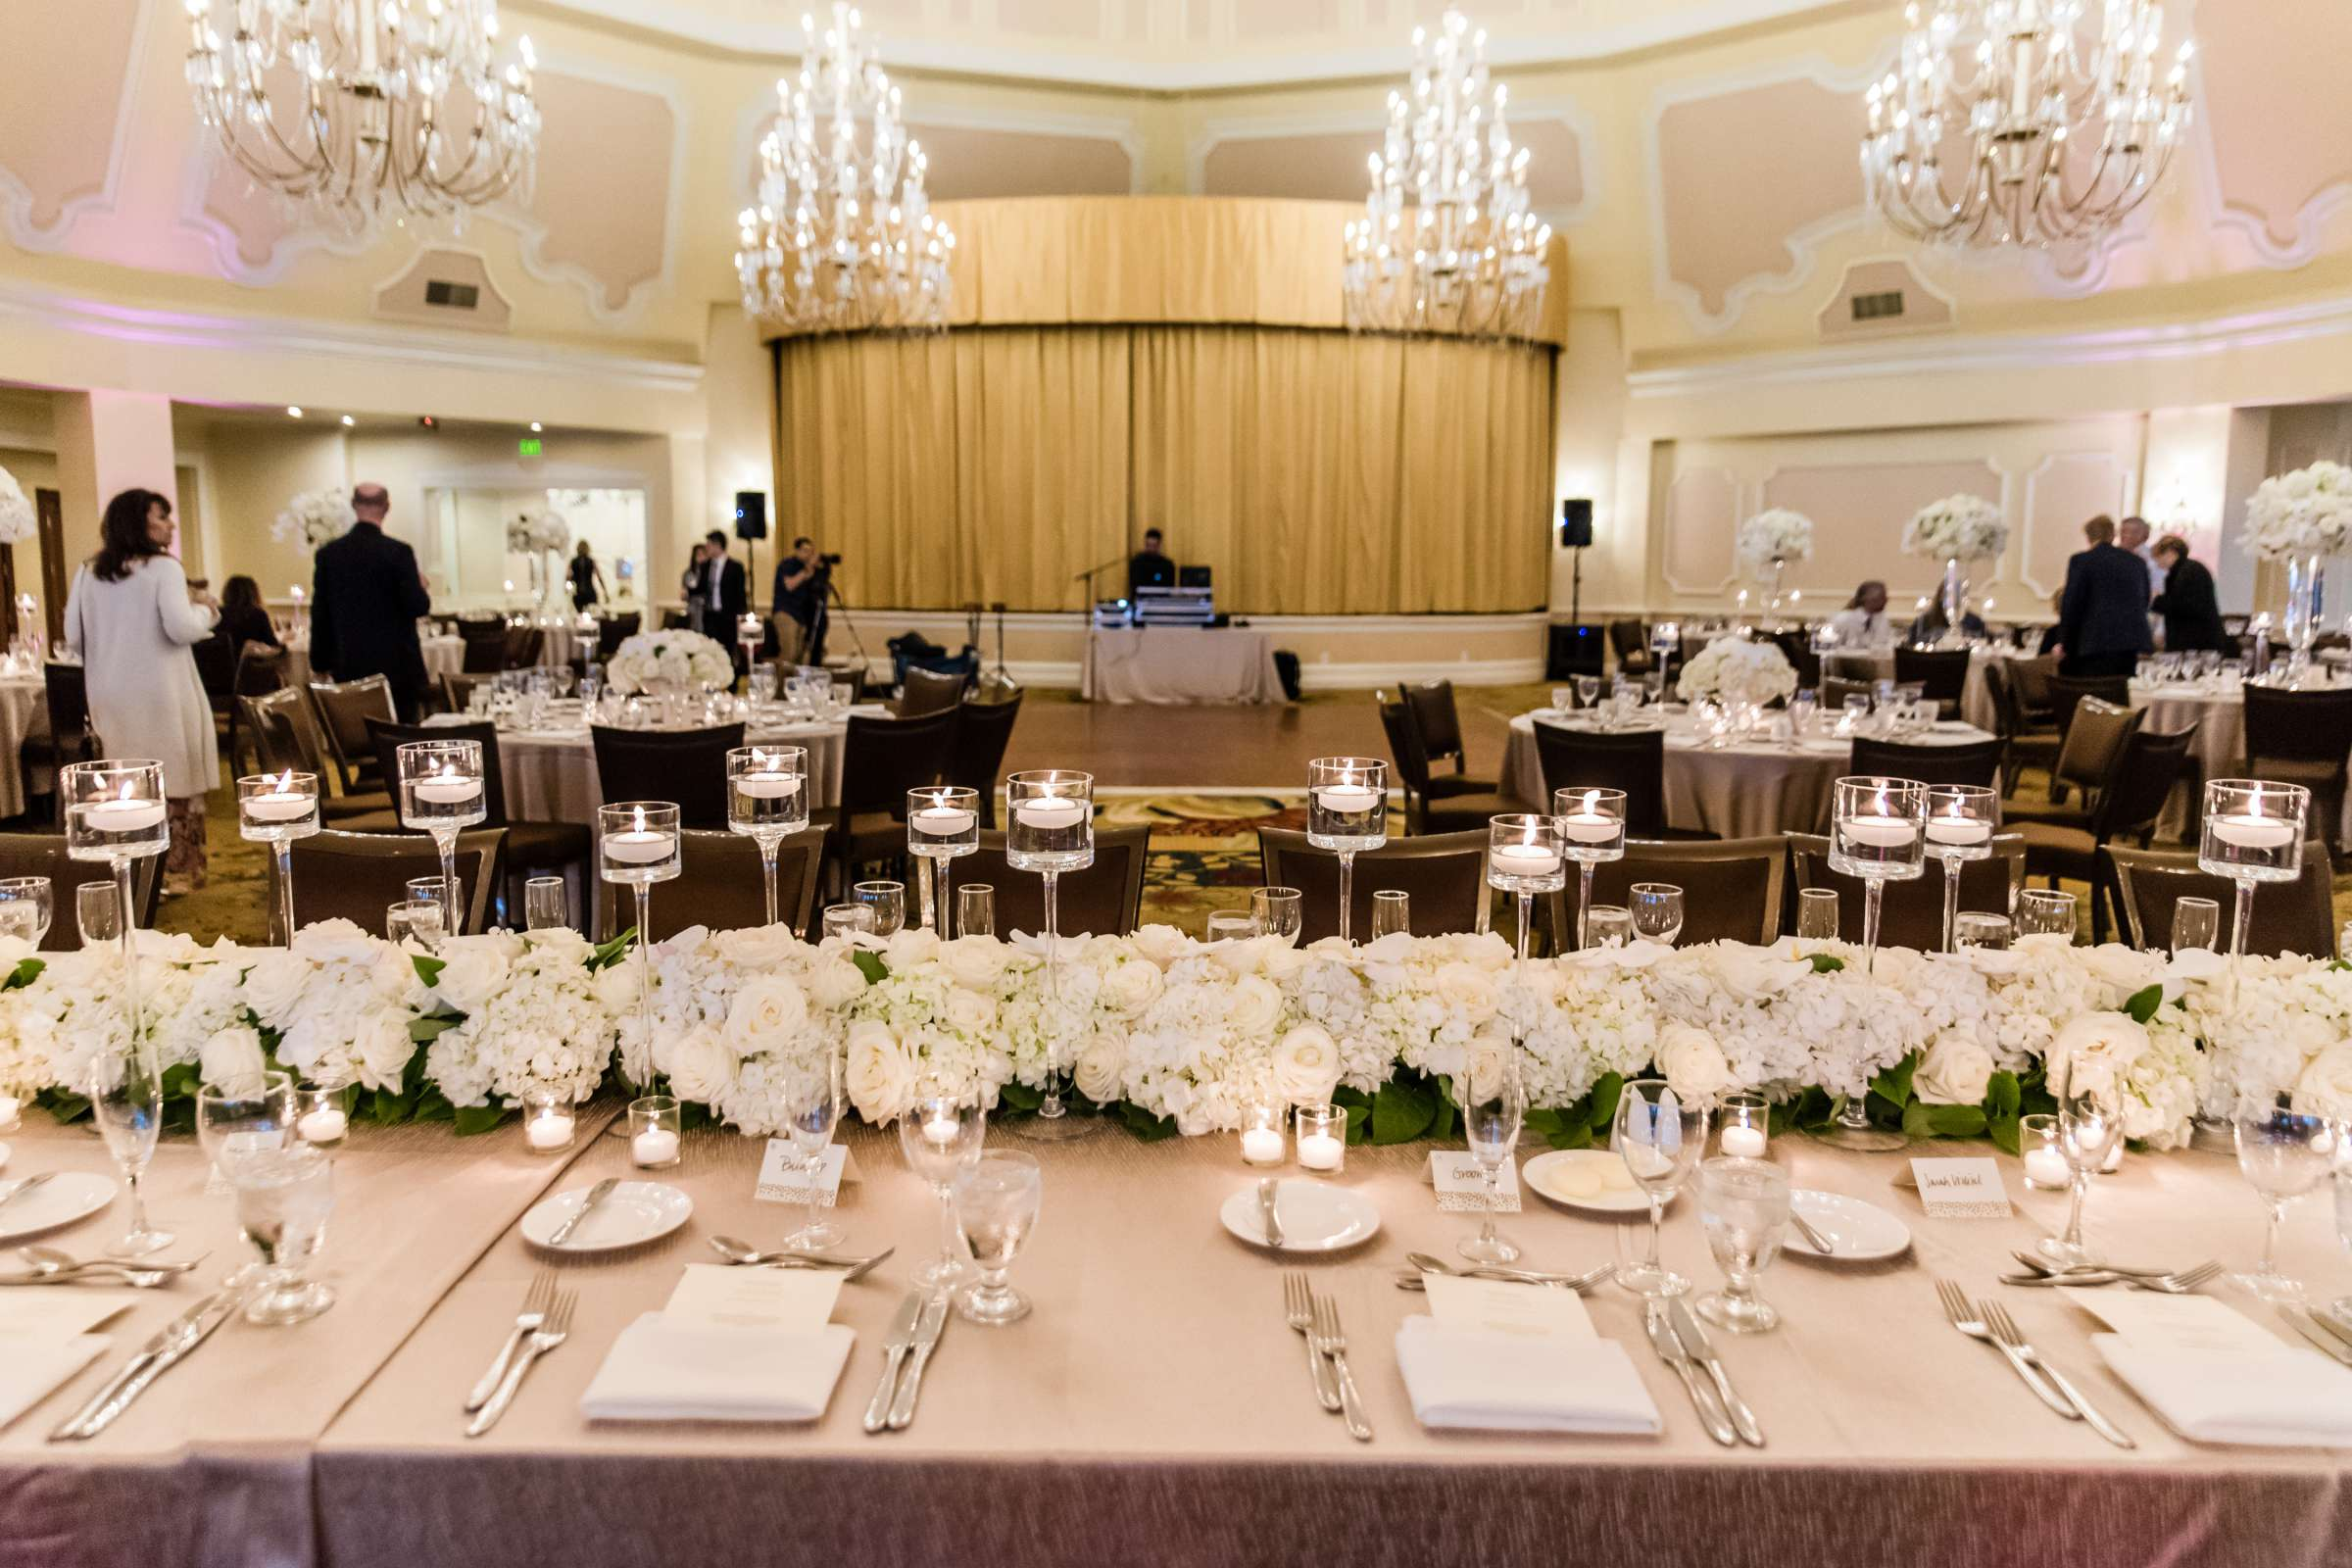 Hotel Del Coronado Wedding coordinated by Creative Affairs Inc, Diane and Paul Wedding Photo #138 by True Photography